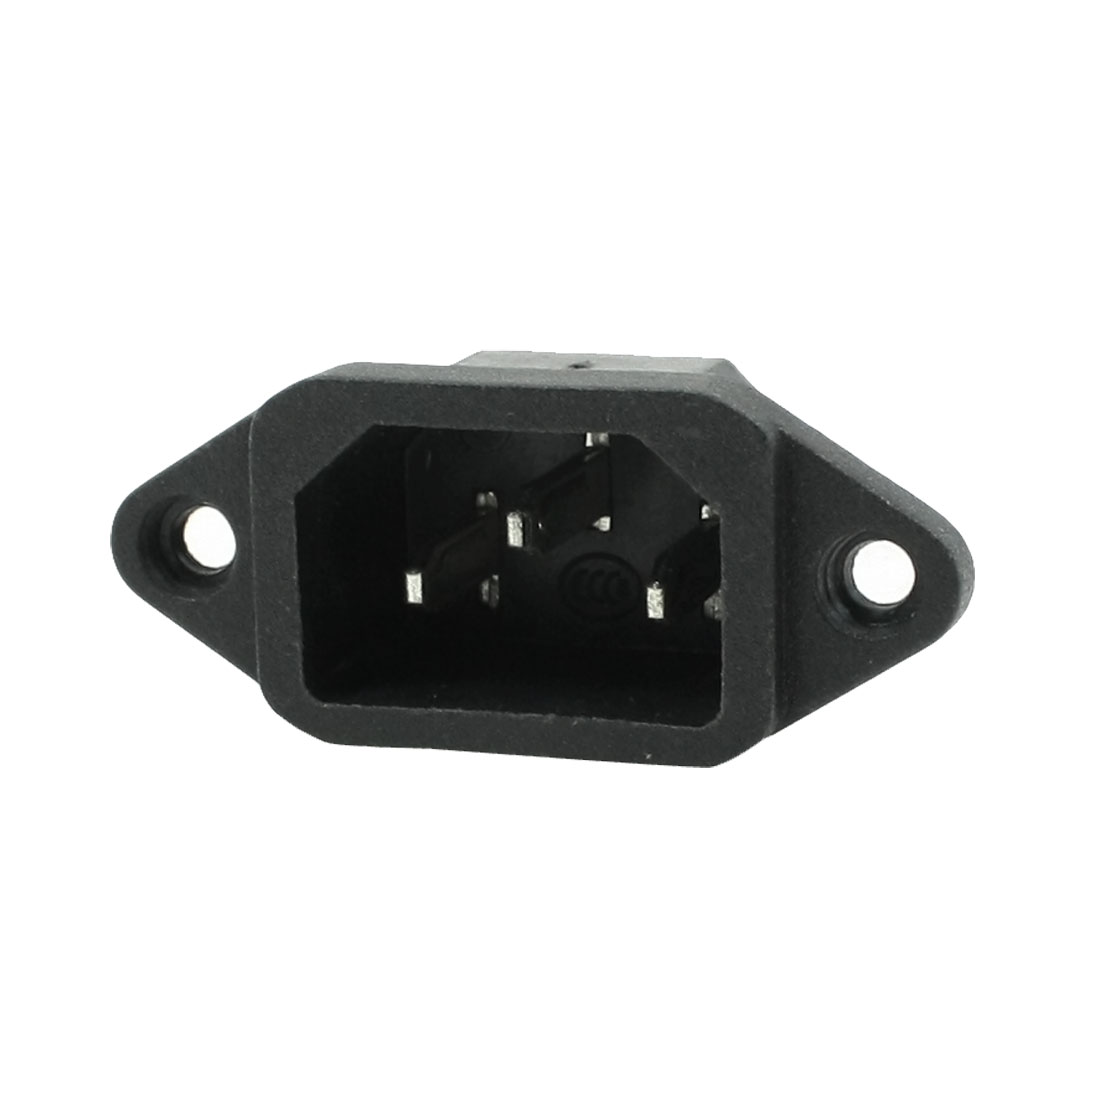 10A 250VAC Panel Mounting Male C14 Power Adapter Connector Black